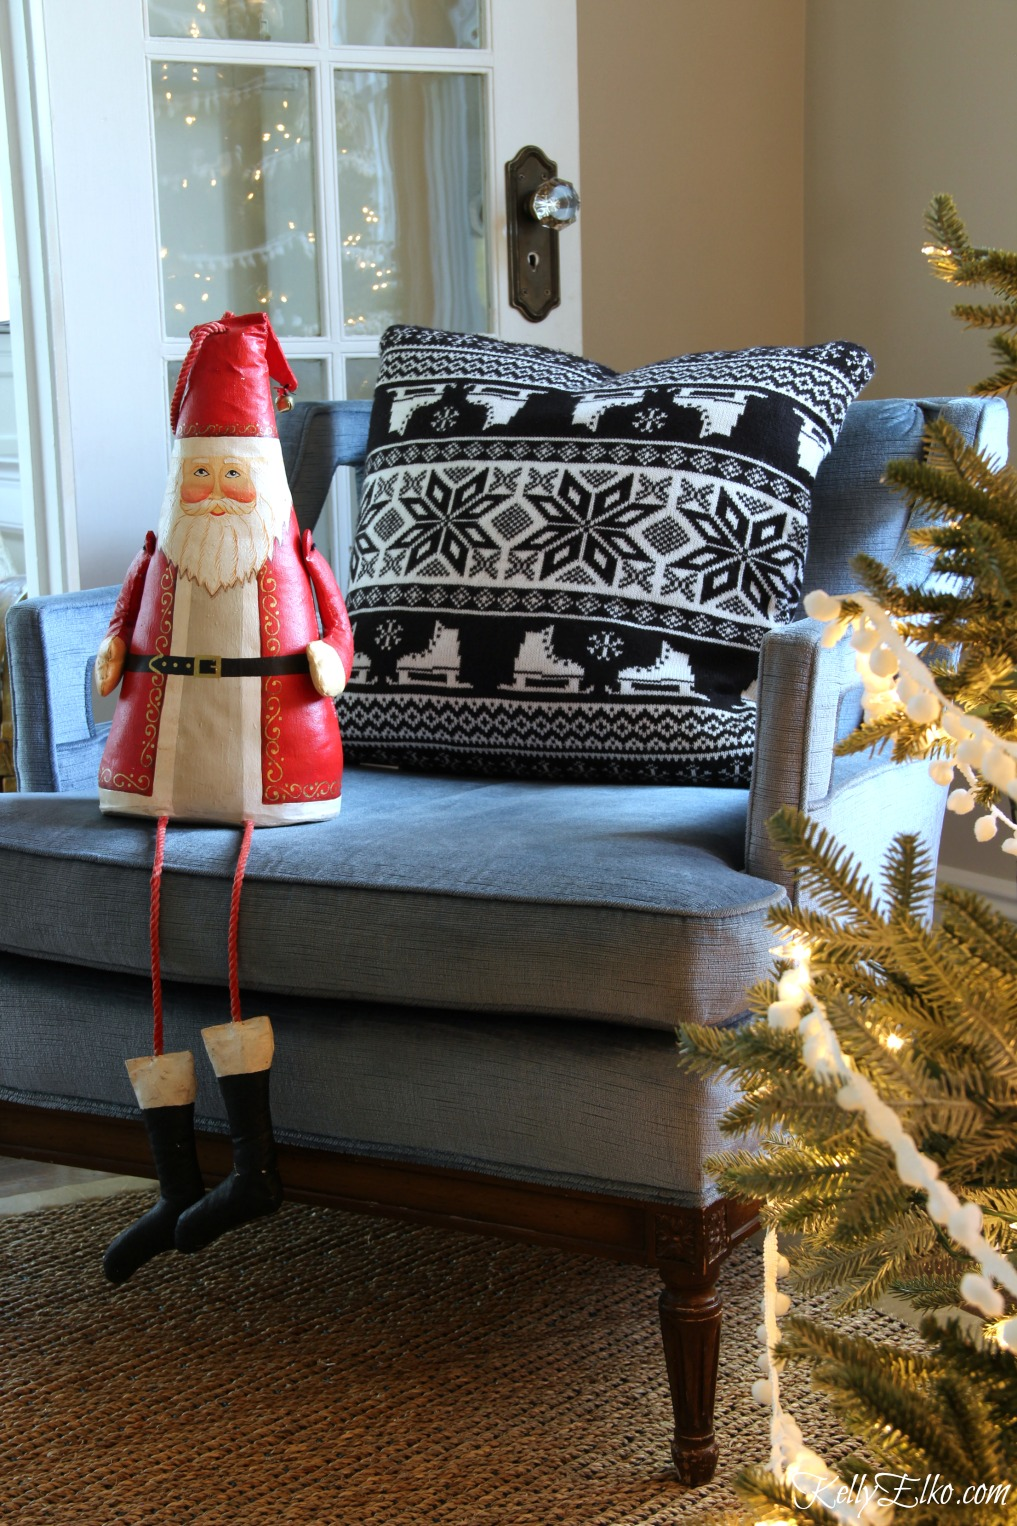 Christmas Home Tour - love this cute little Santa kellyelko.com